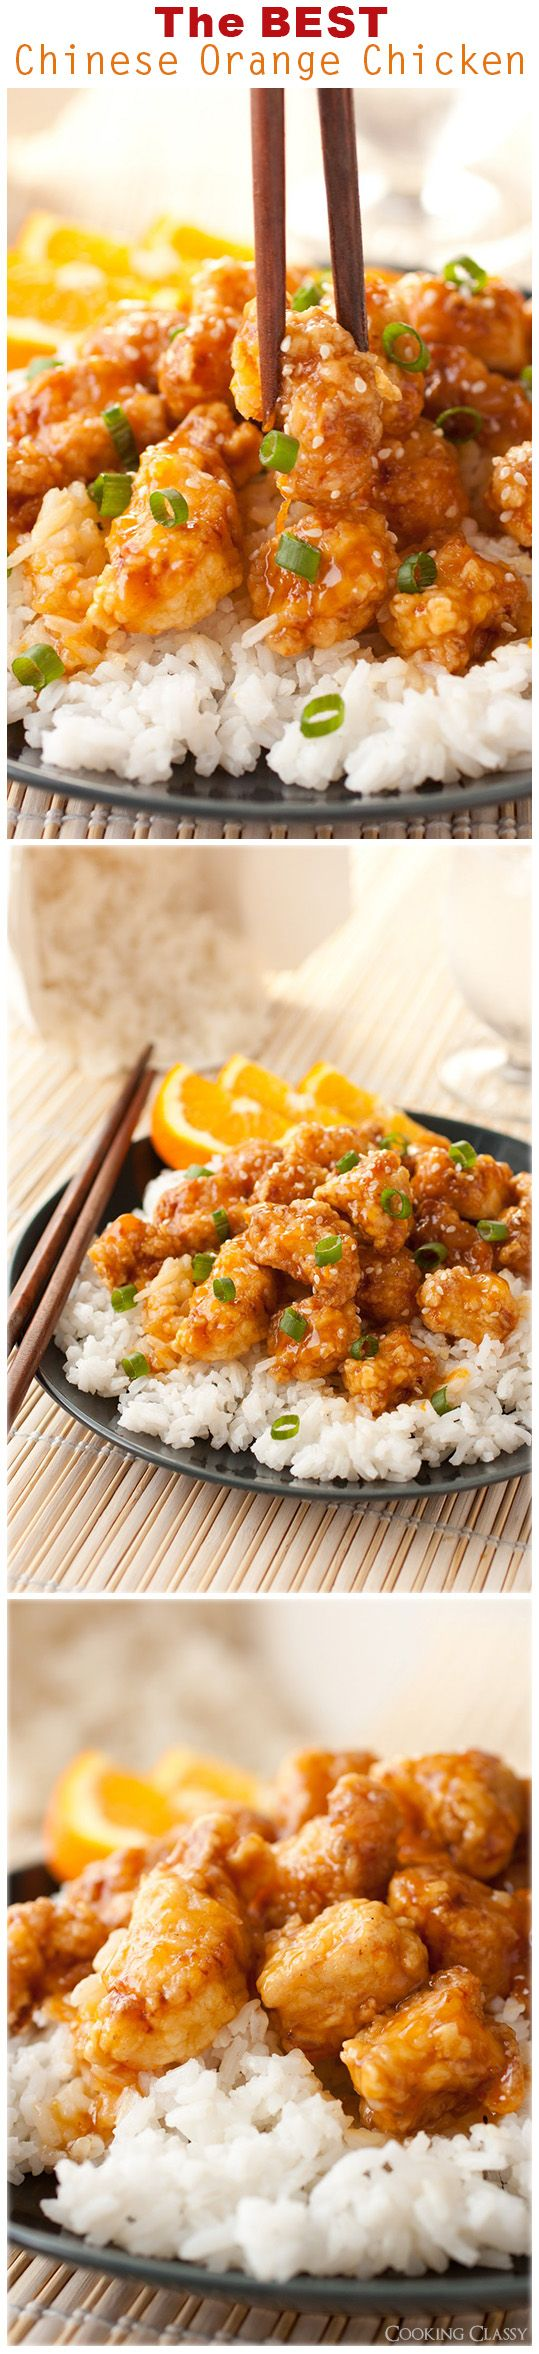 {Asia} Chinese Orange Chicken - this is no doubt the BEST orange chicken I've ever had! It has gotten rave reviews!